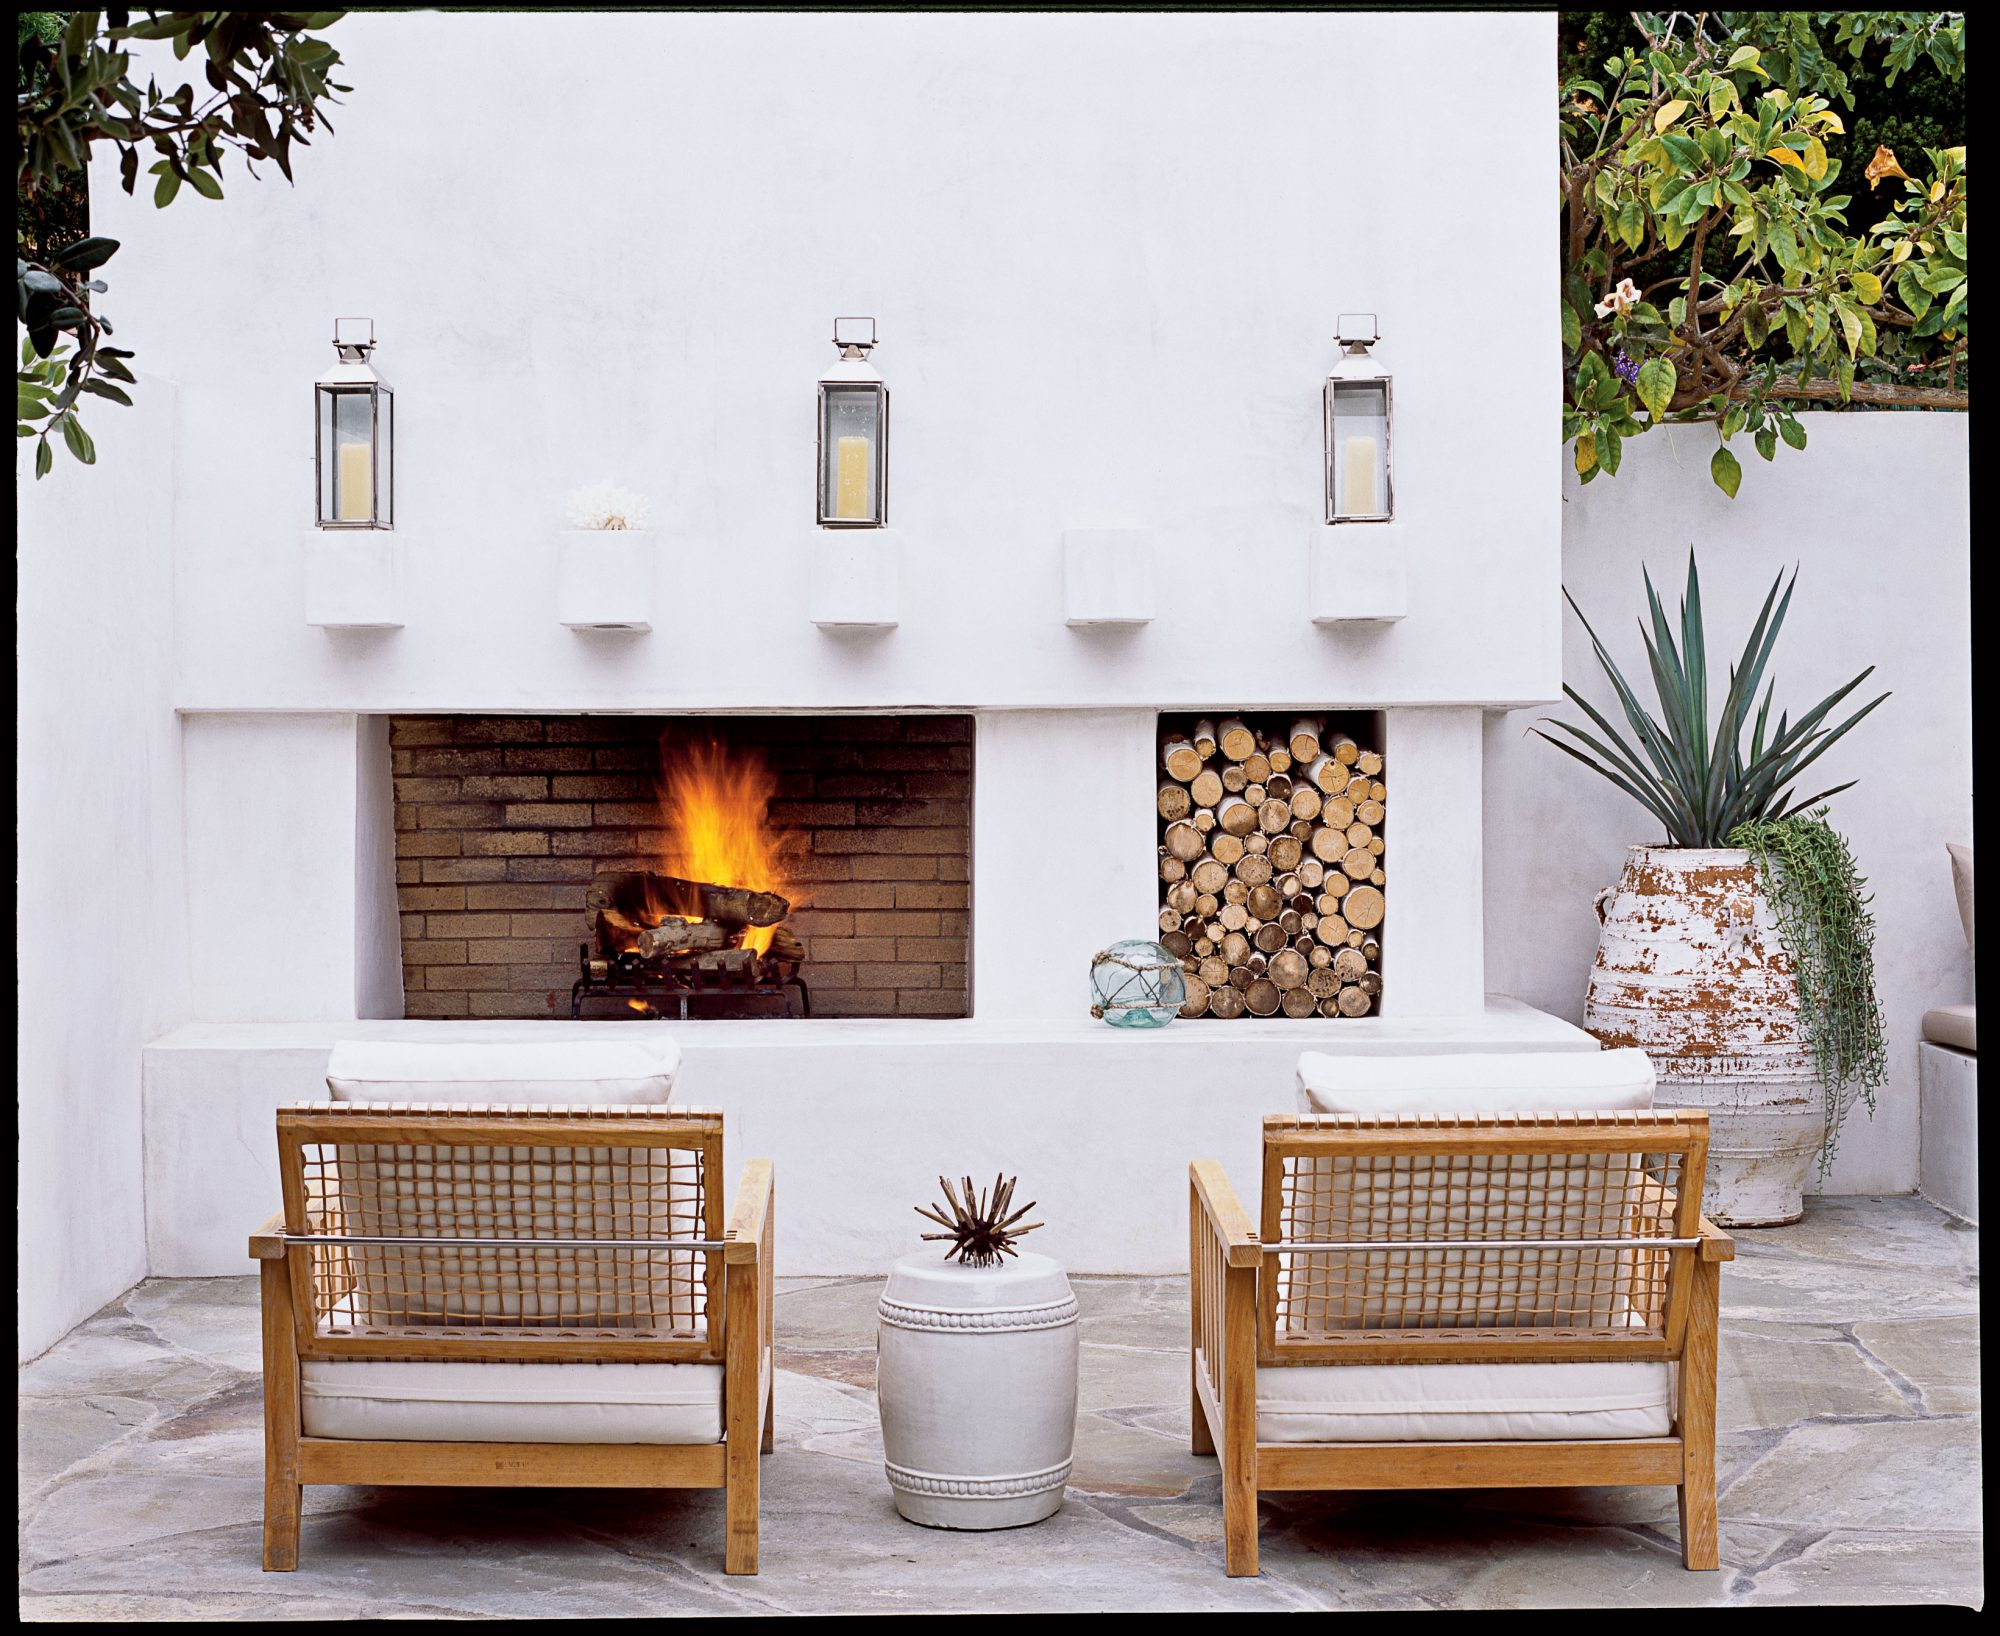 A simple outdoor fireplace makes a patio or porch functional year-round. Plush cushions on comfy wide-backed chairs make it the perfect place for enjoying a cocktail on a cool evening.